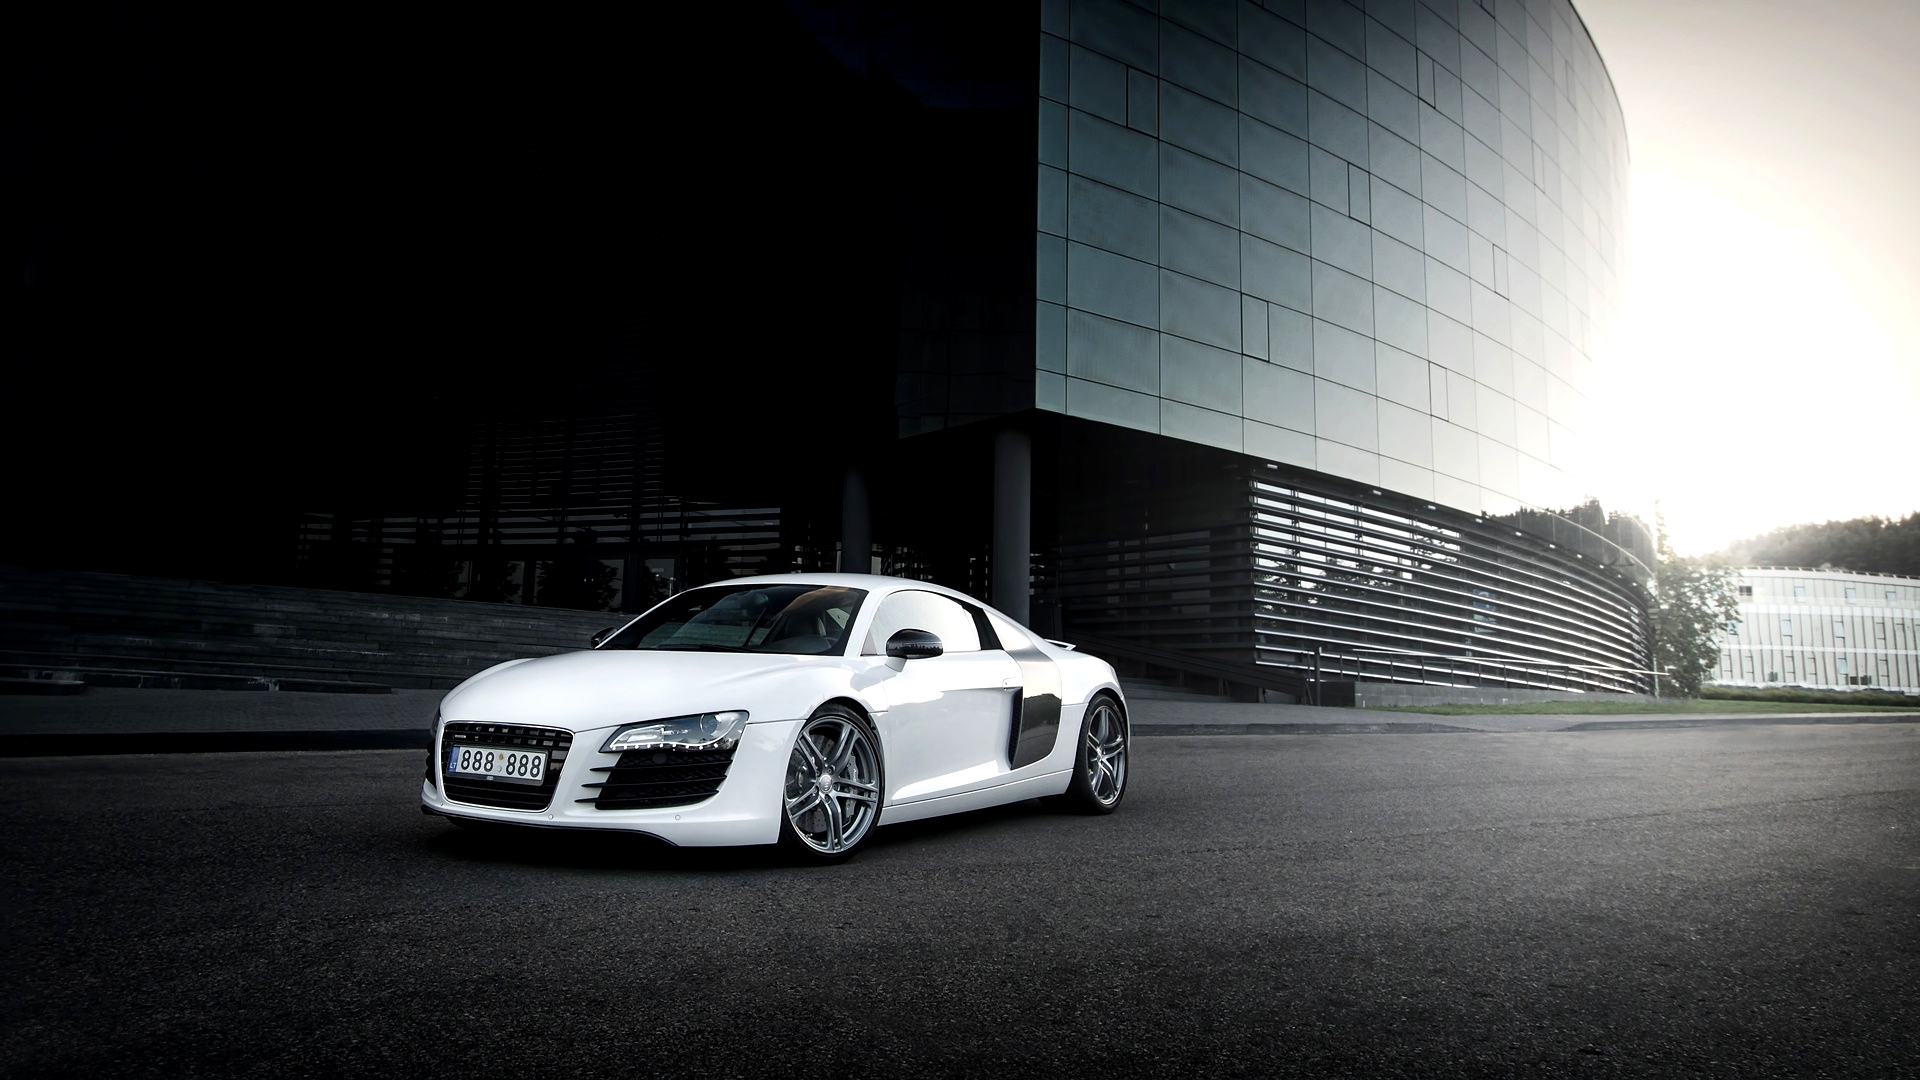 Audi R8 Wallpaper HD 49367 1920x1080 px Cool Audi R Wallpapers on ford gt cool wallpapers, audi r8 cool cars, mclaren p1 cool wallpapers, saleen s7 cool wallpapers, ford mustang cool wallpapers,